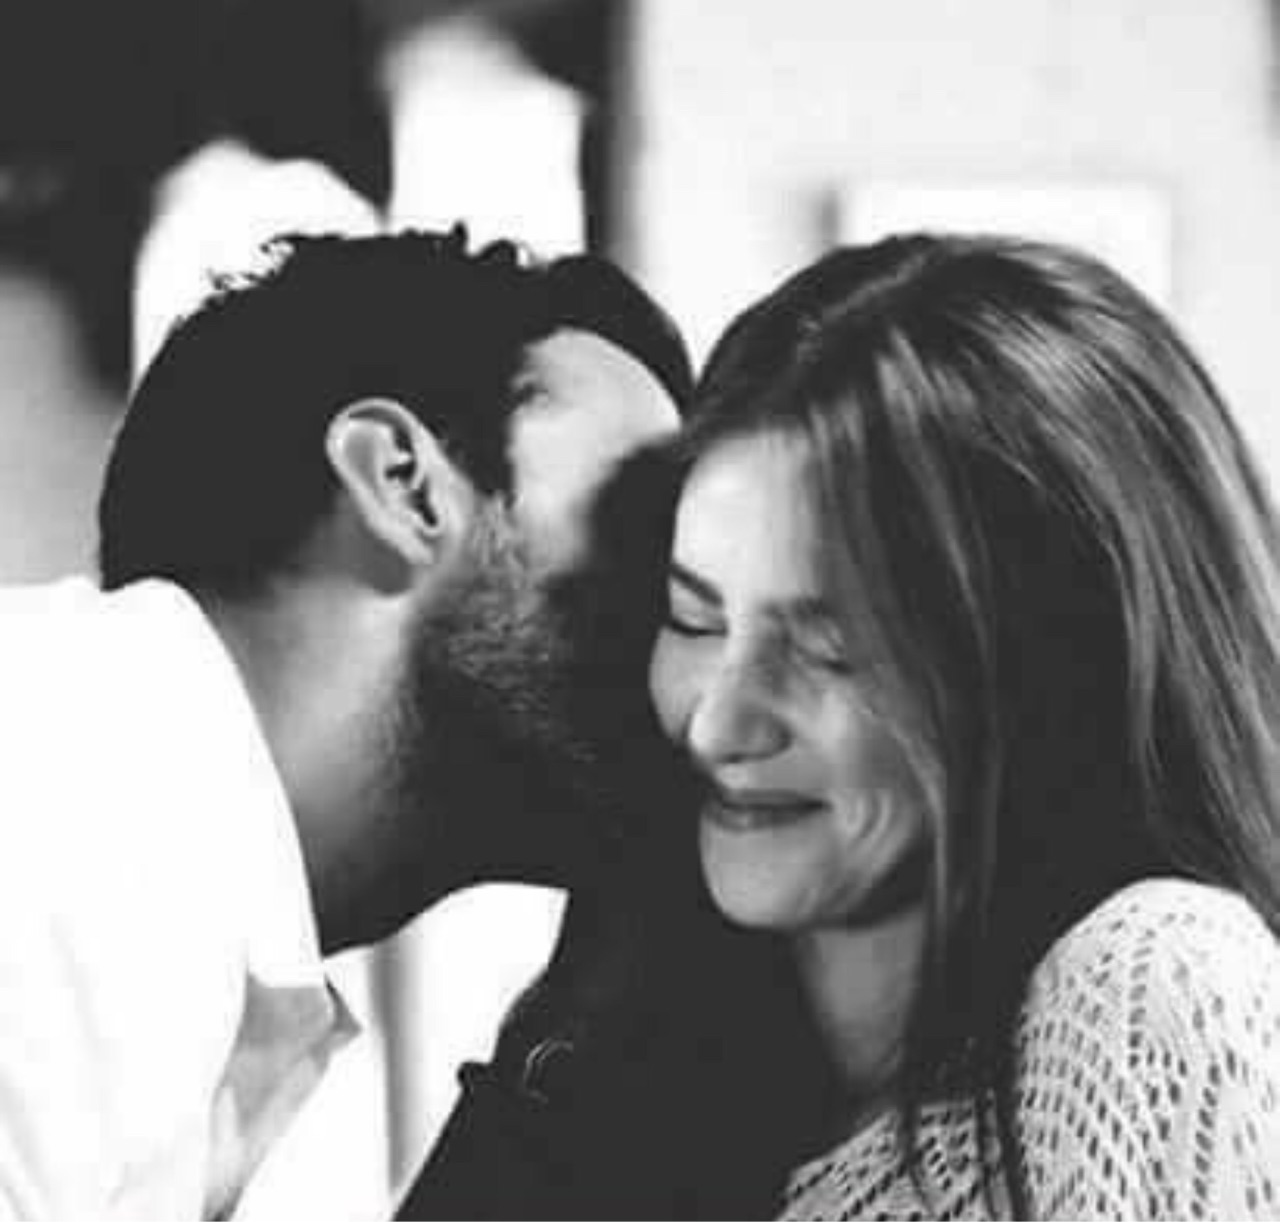 730 Images About Love Couples صور حب On We Heart It See